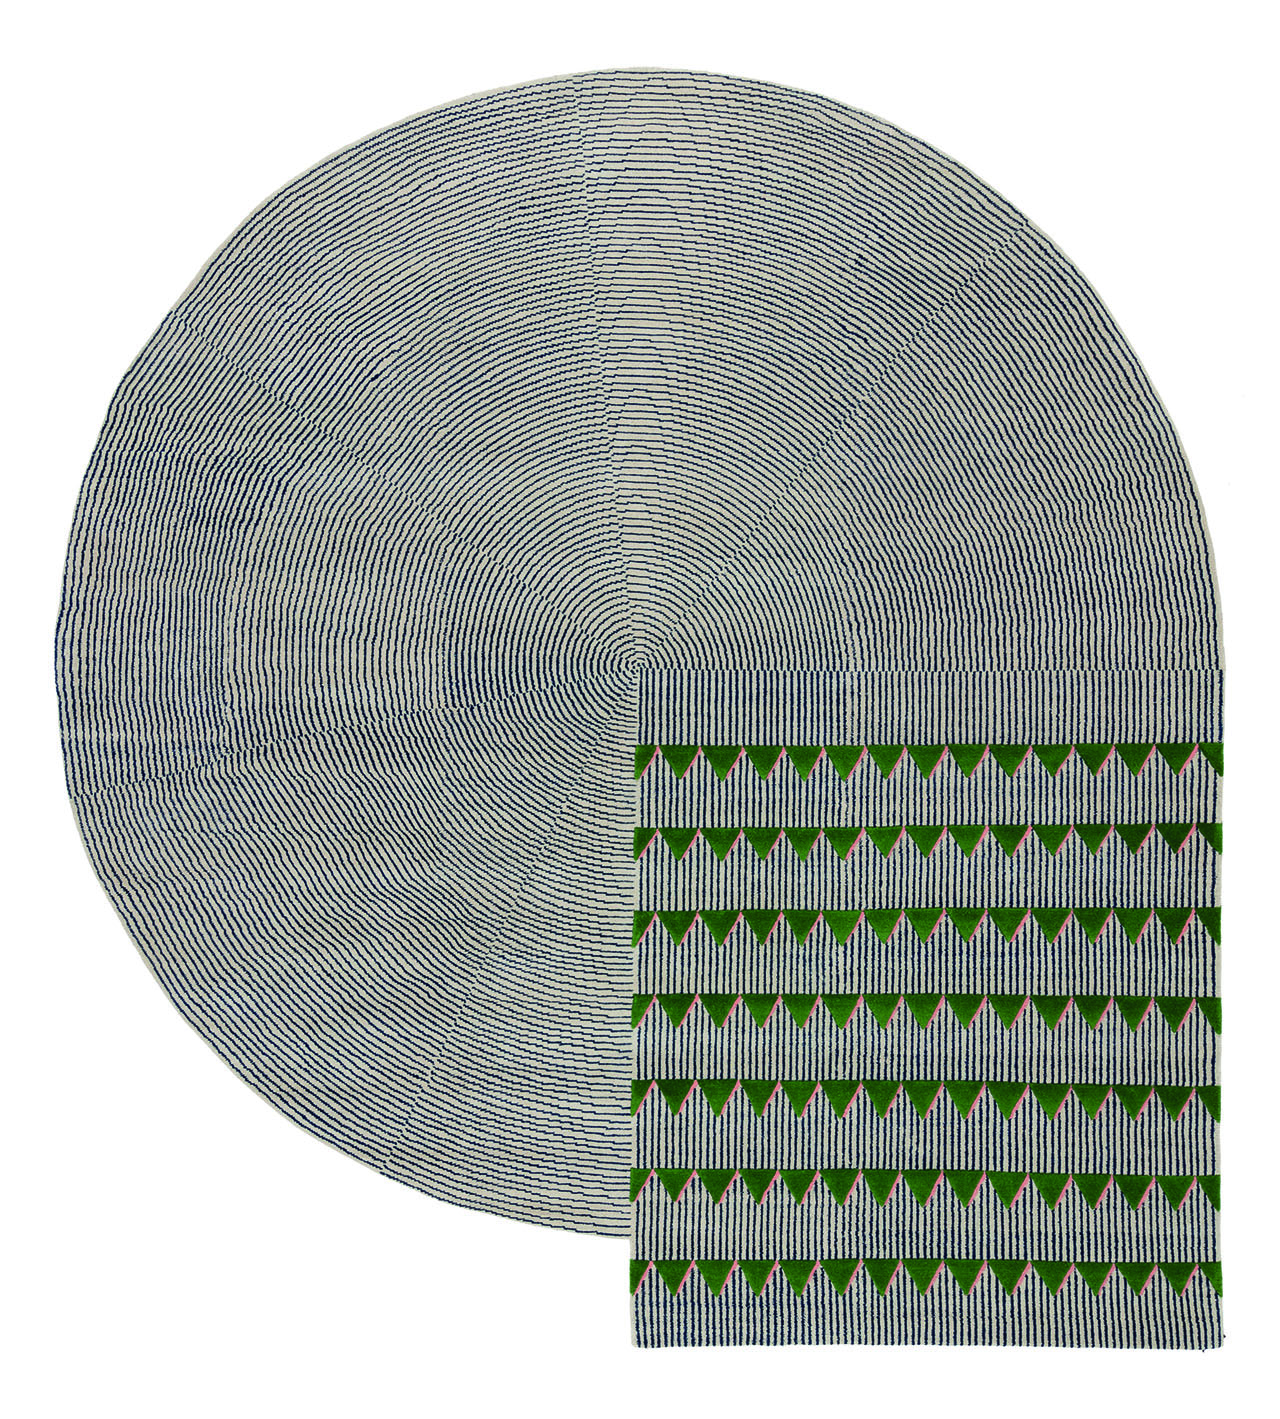 Plasterworks rug series designed by david/nicolas for cc-tapis.